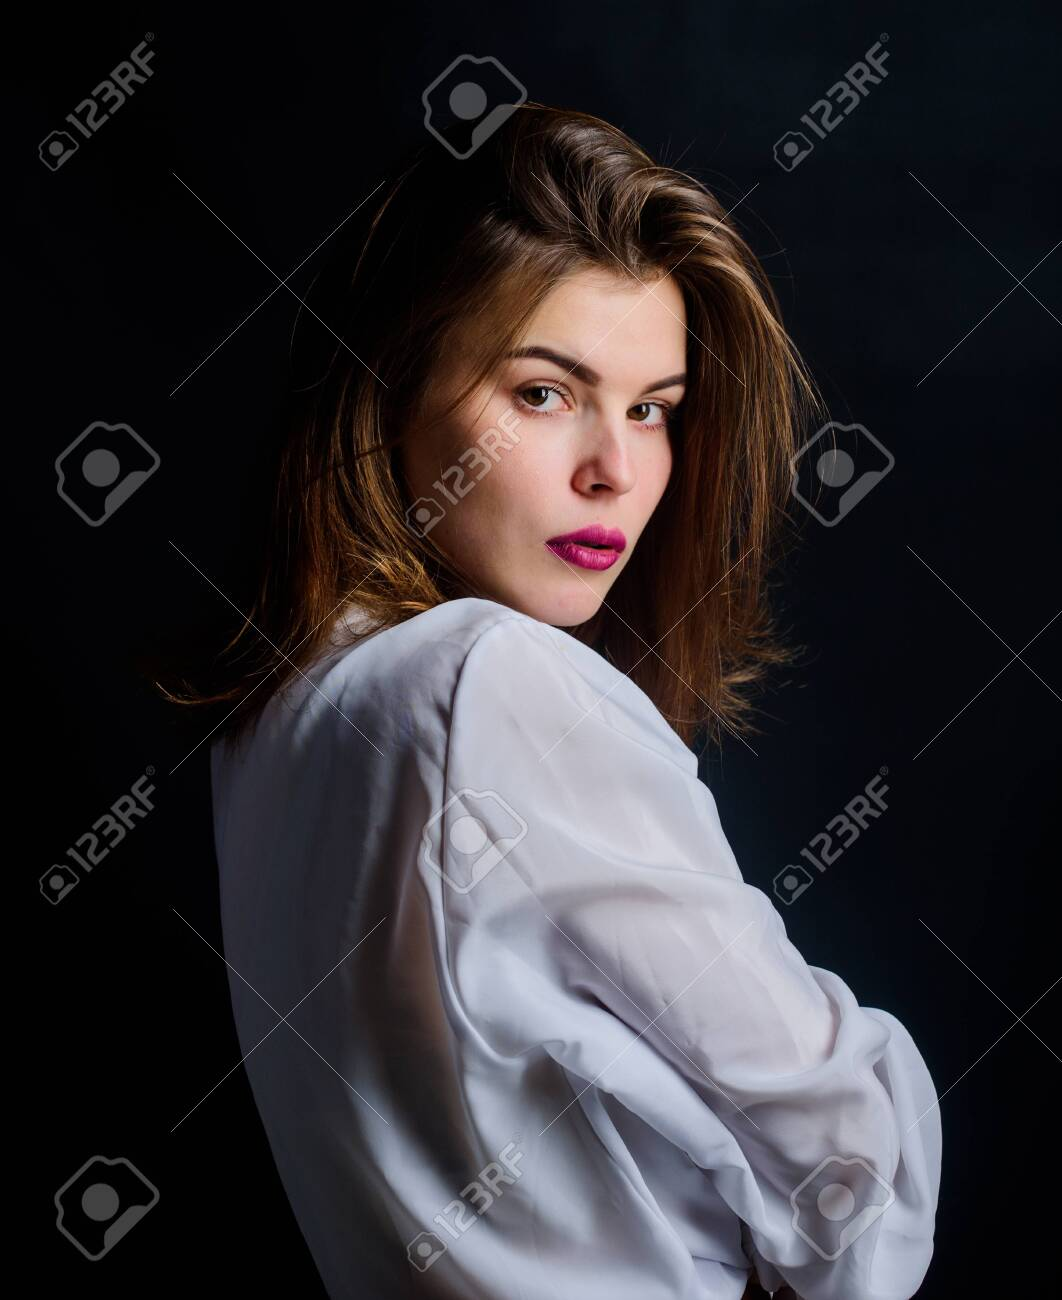 Beauty salon. fashion and beauty concept. youth attractiveness. pure beauty. woman with short stylish hair. girl pink lips. makeup cosmetics for female. pretty woman isolated black background - 134387385